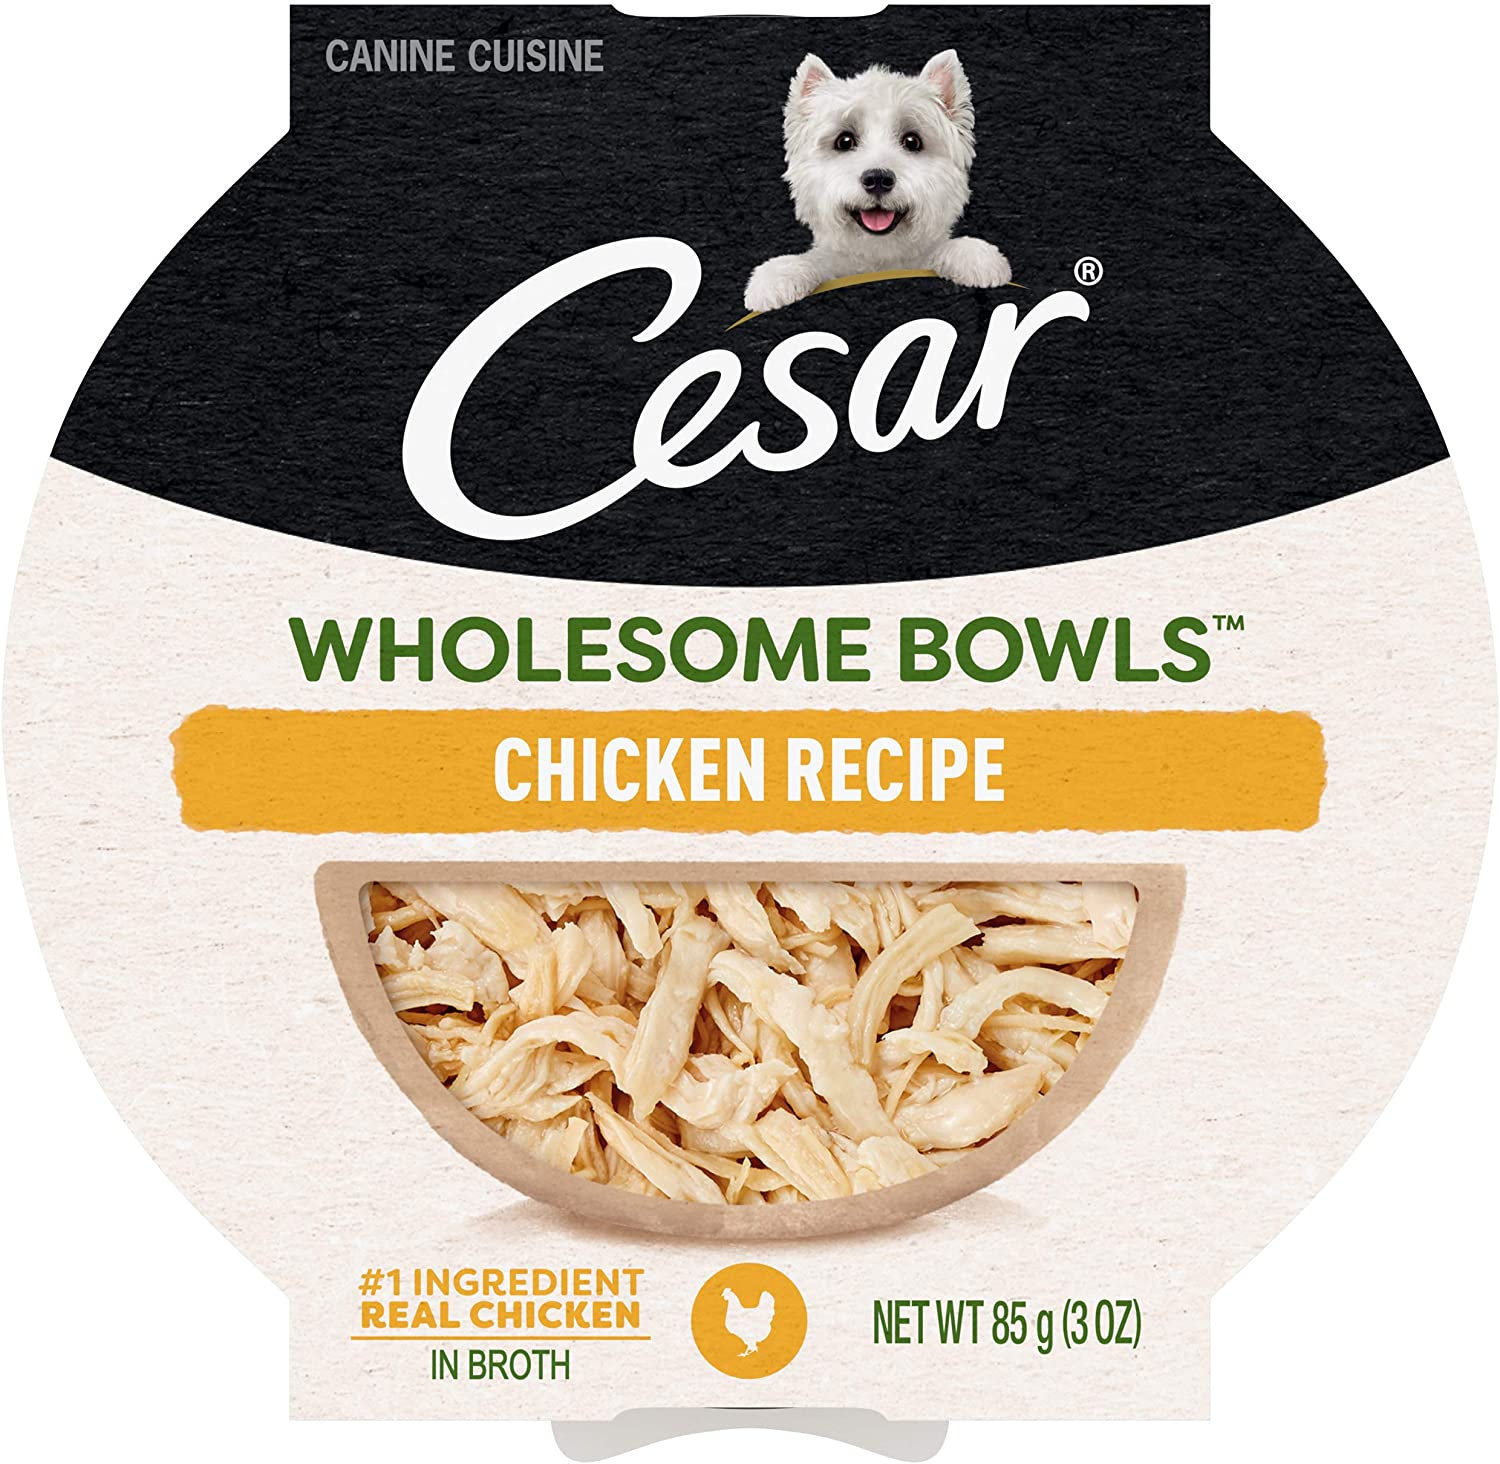 CESAR WHOLESOME BOWLS Adult Soft Wet Dog Food Chicken Recipe, (10) 3 oz. Bowls